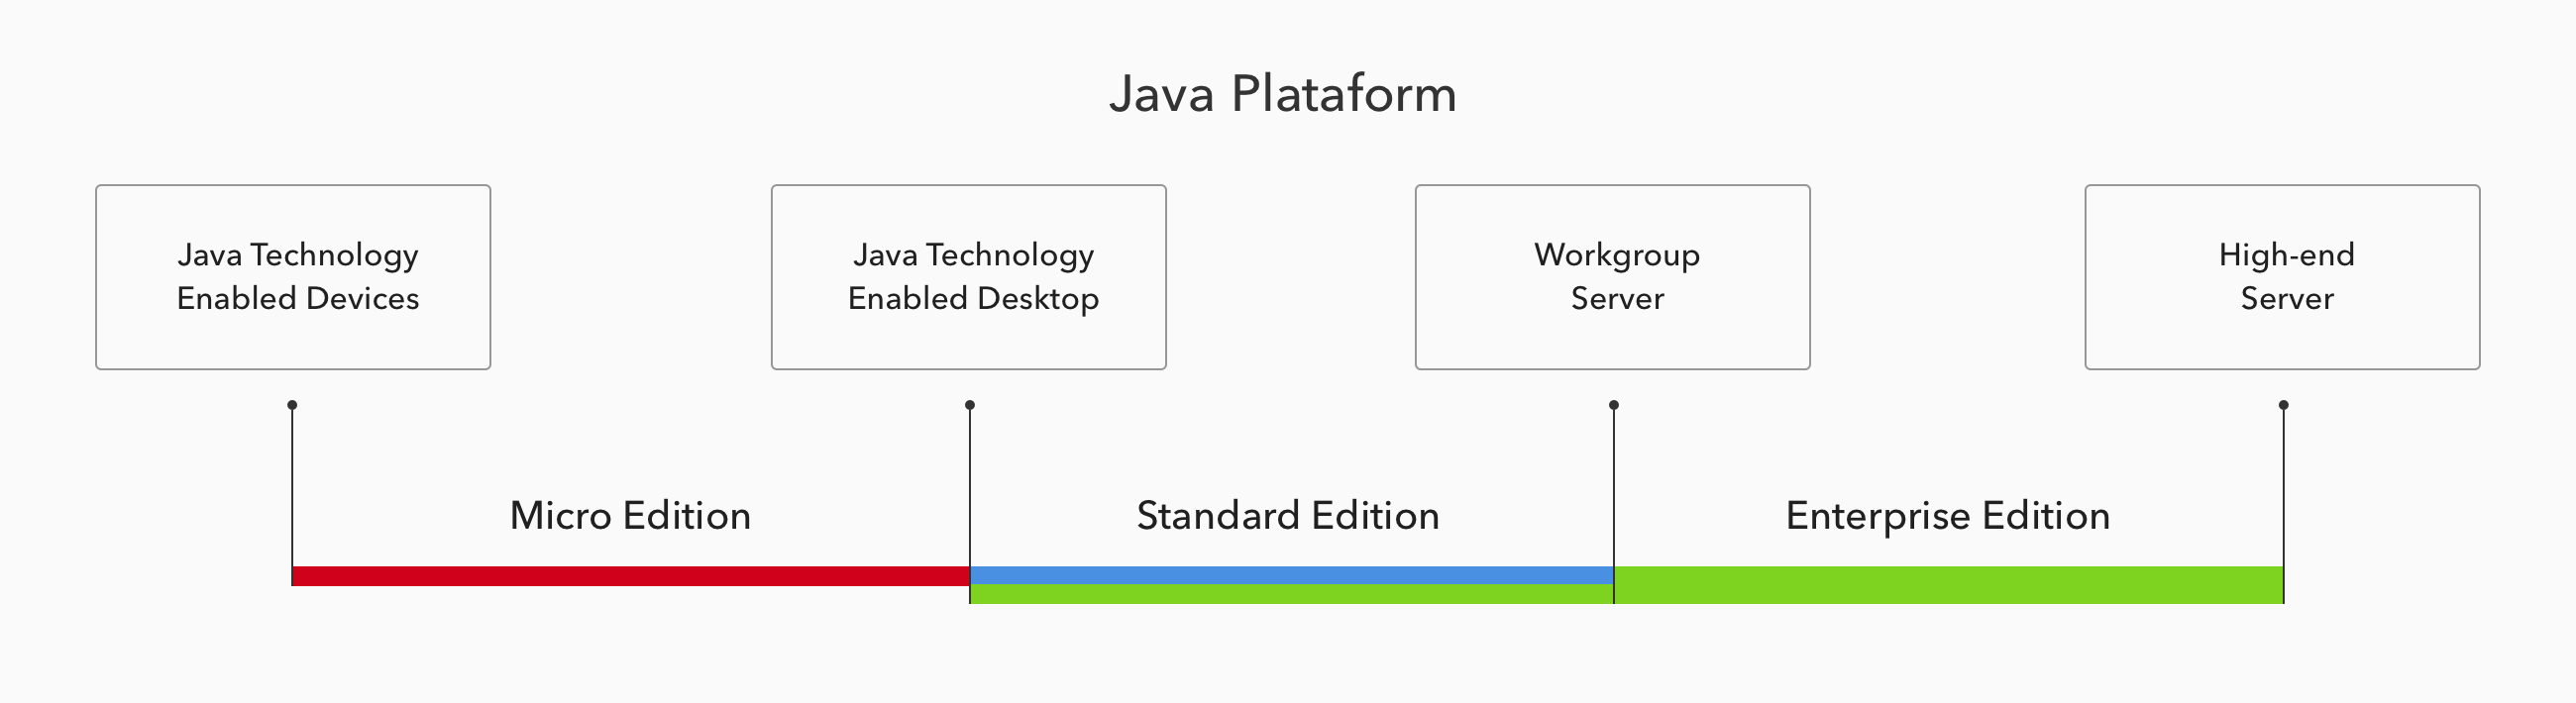 Java Editions and their applicability